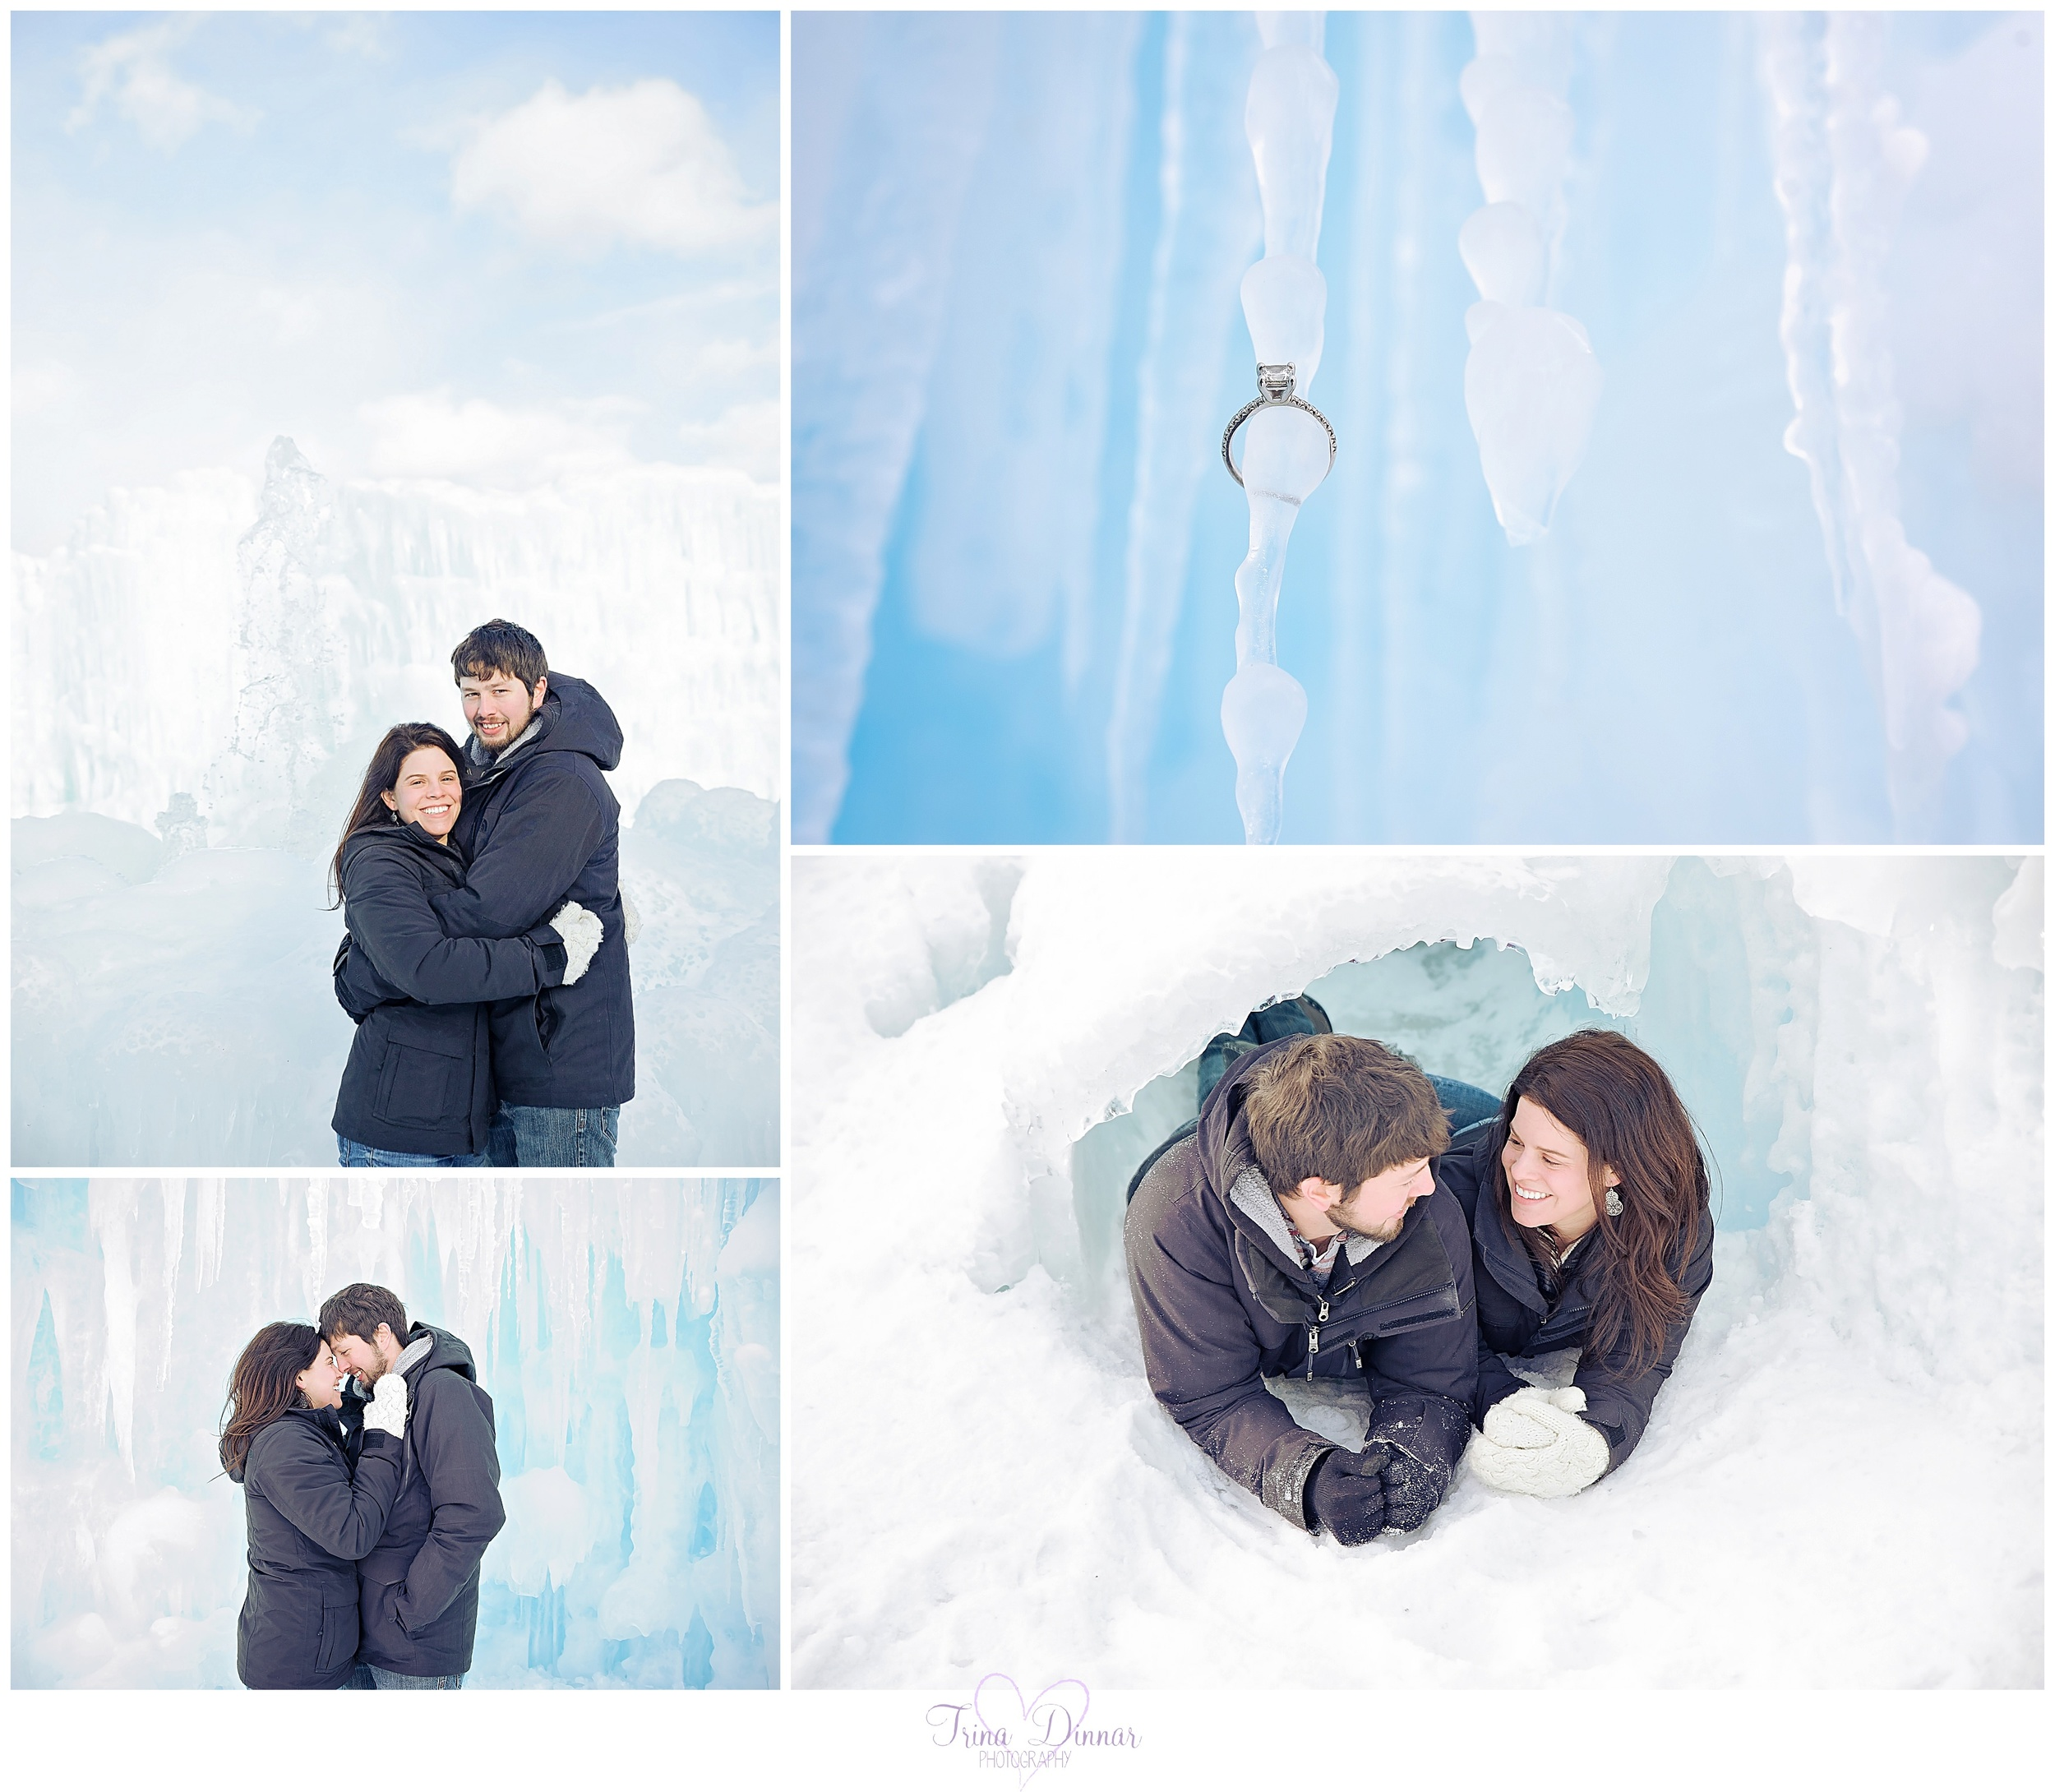 Engagement photography winter ideas.